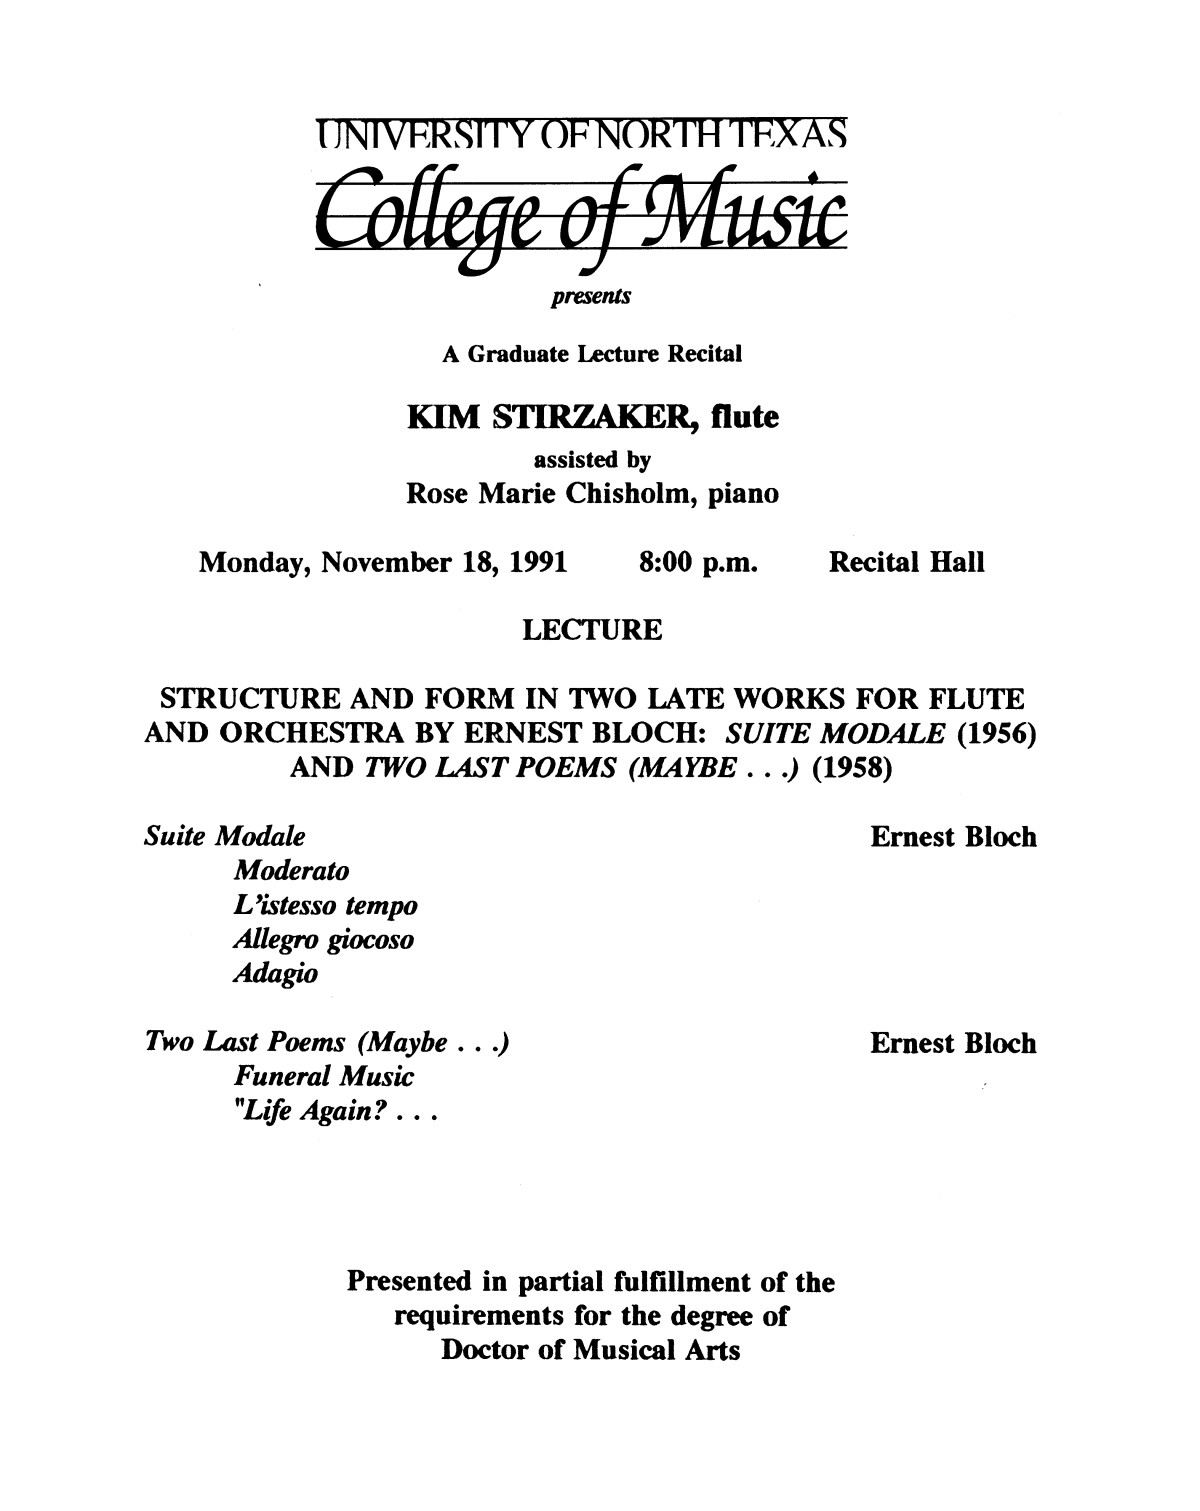 College of Music program book 1991-1992 Student Performances Vol. 2                                                                                                      [Sequence #]: 63 of 310